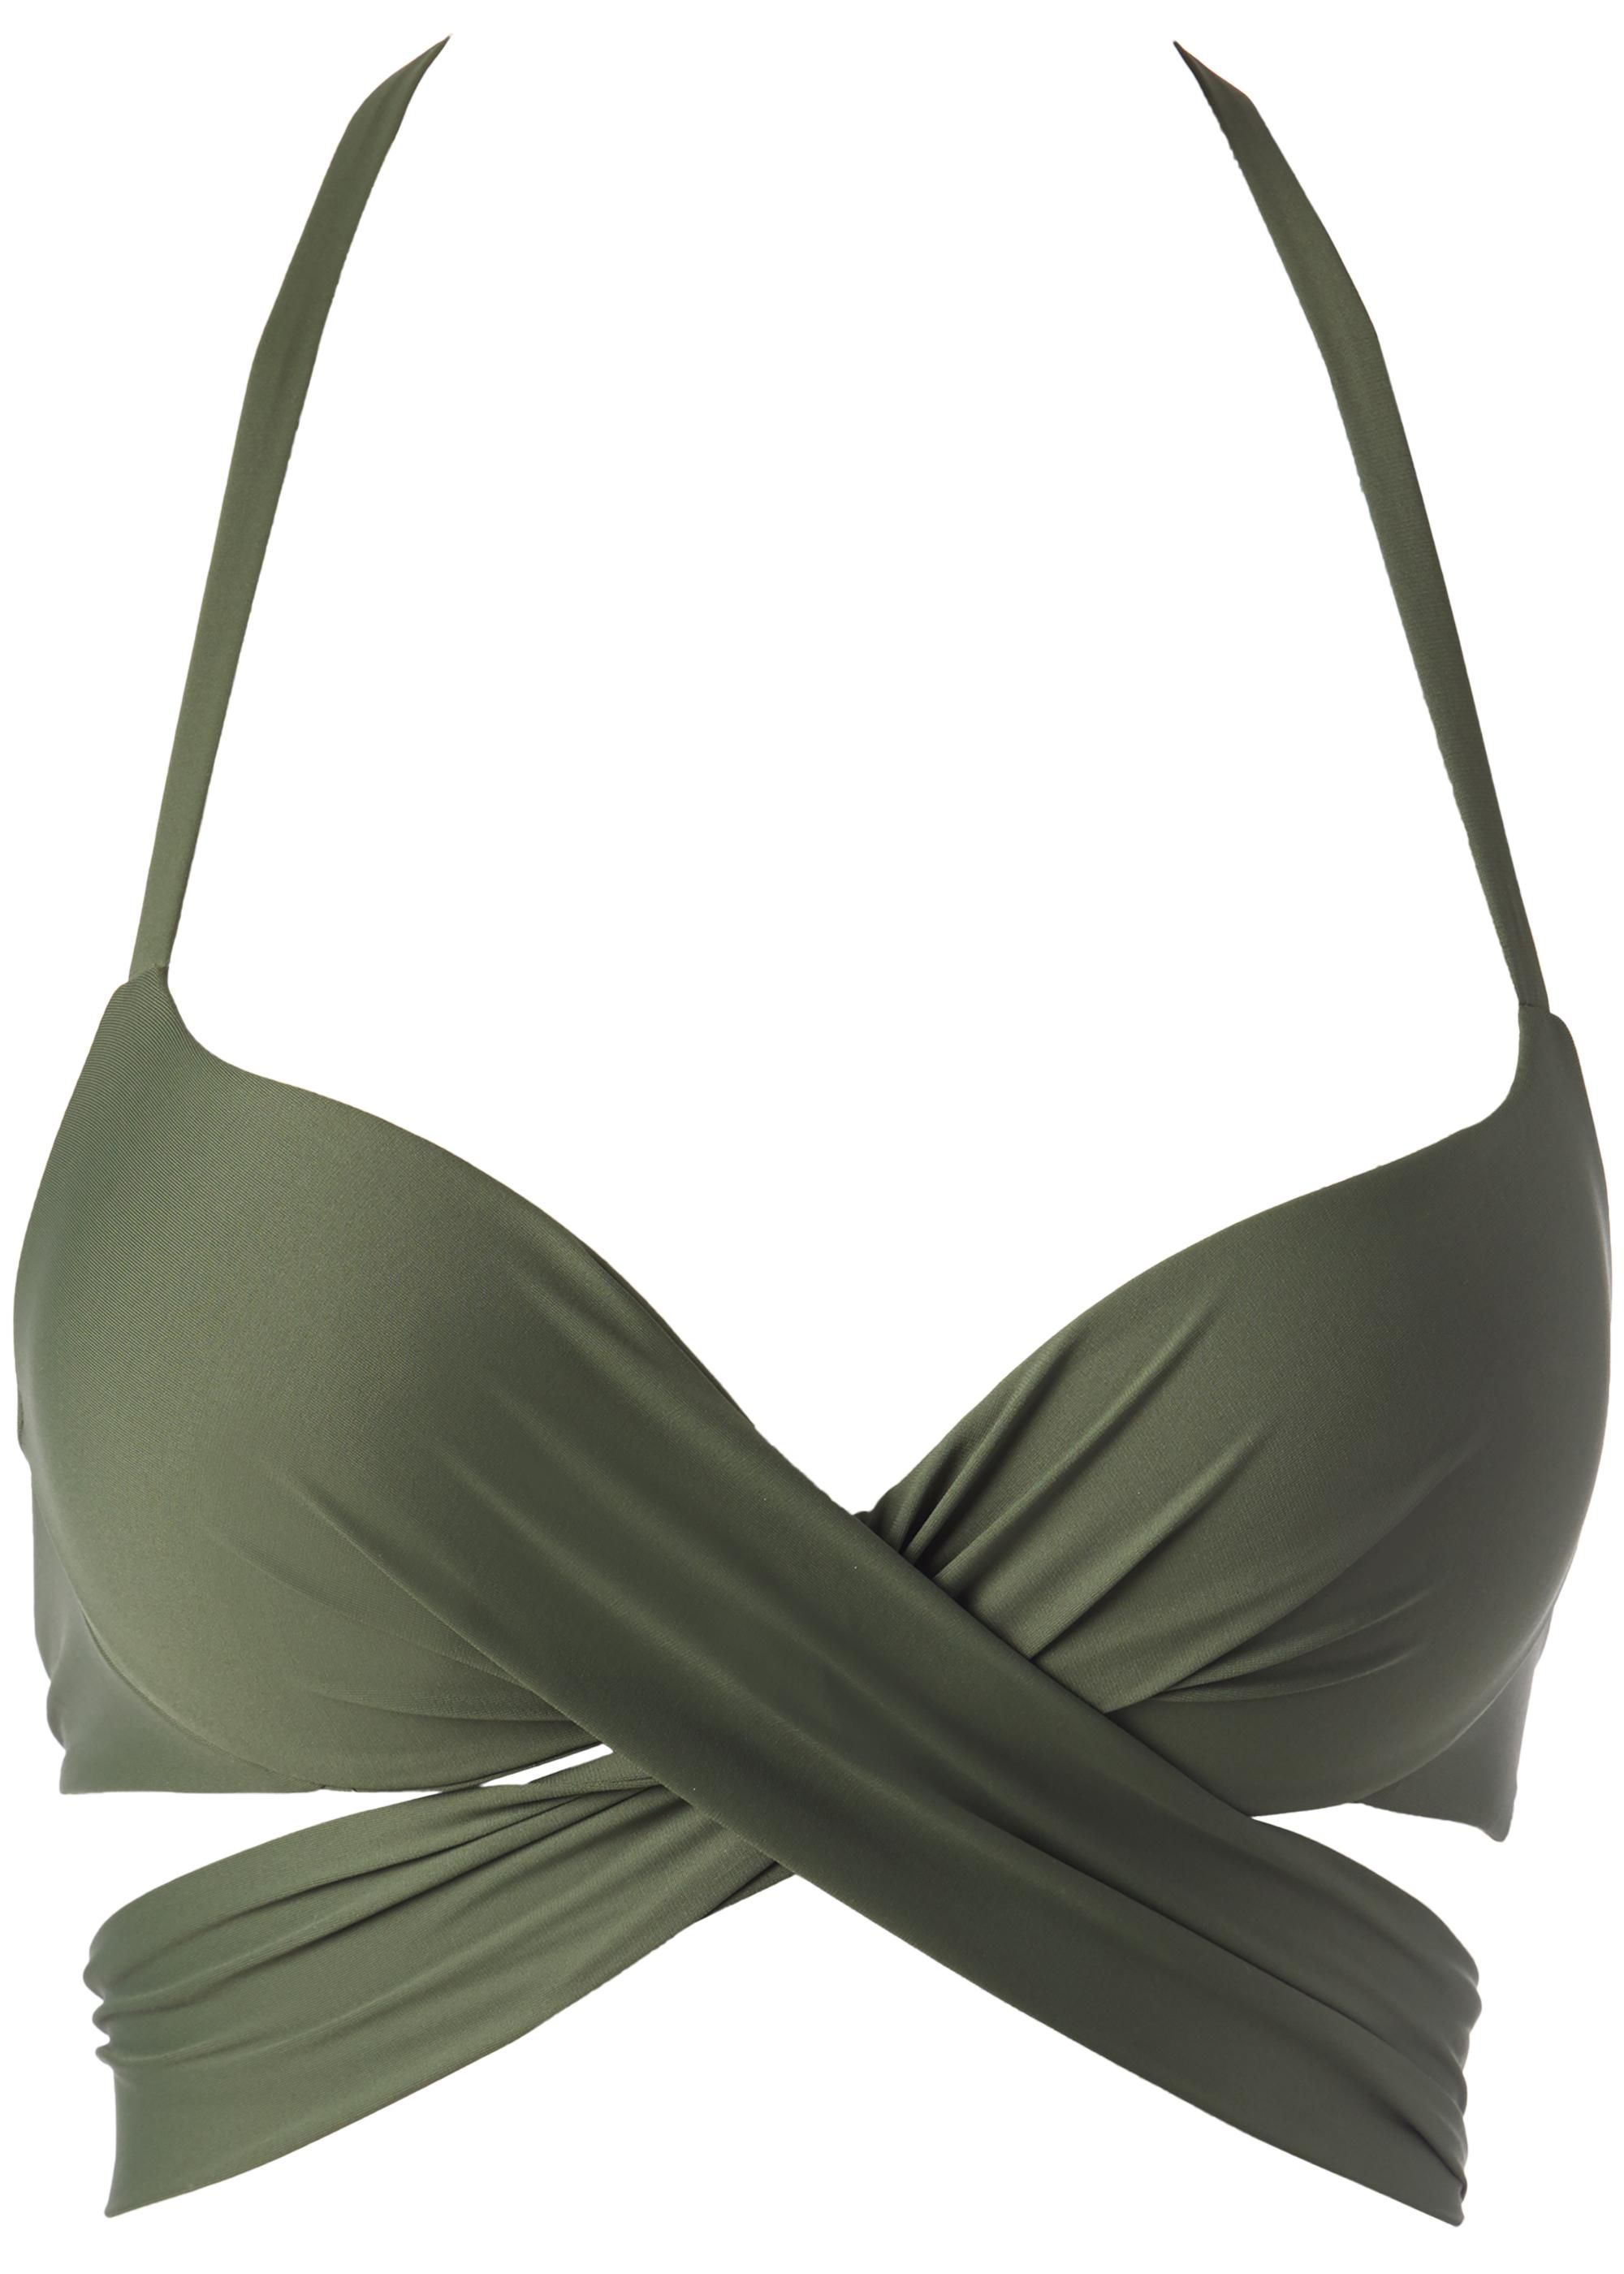 4c74a61199 Push-Up-Bikini-BH Überkreuz-Detail Indonesia - Calzedonia | Sommer ...